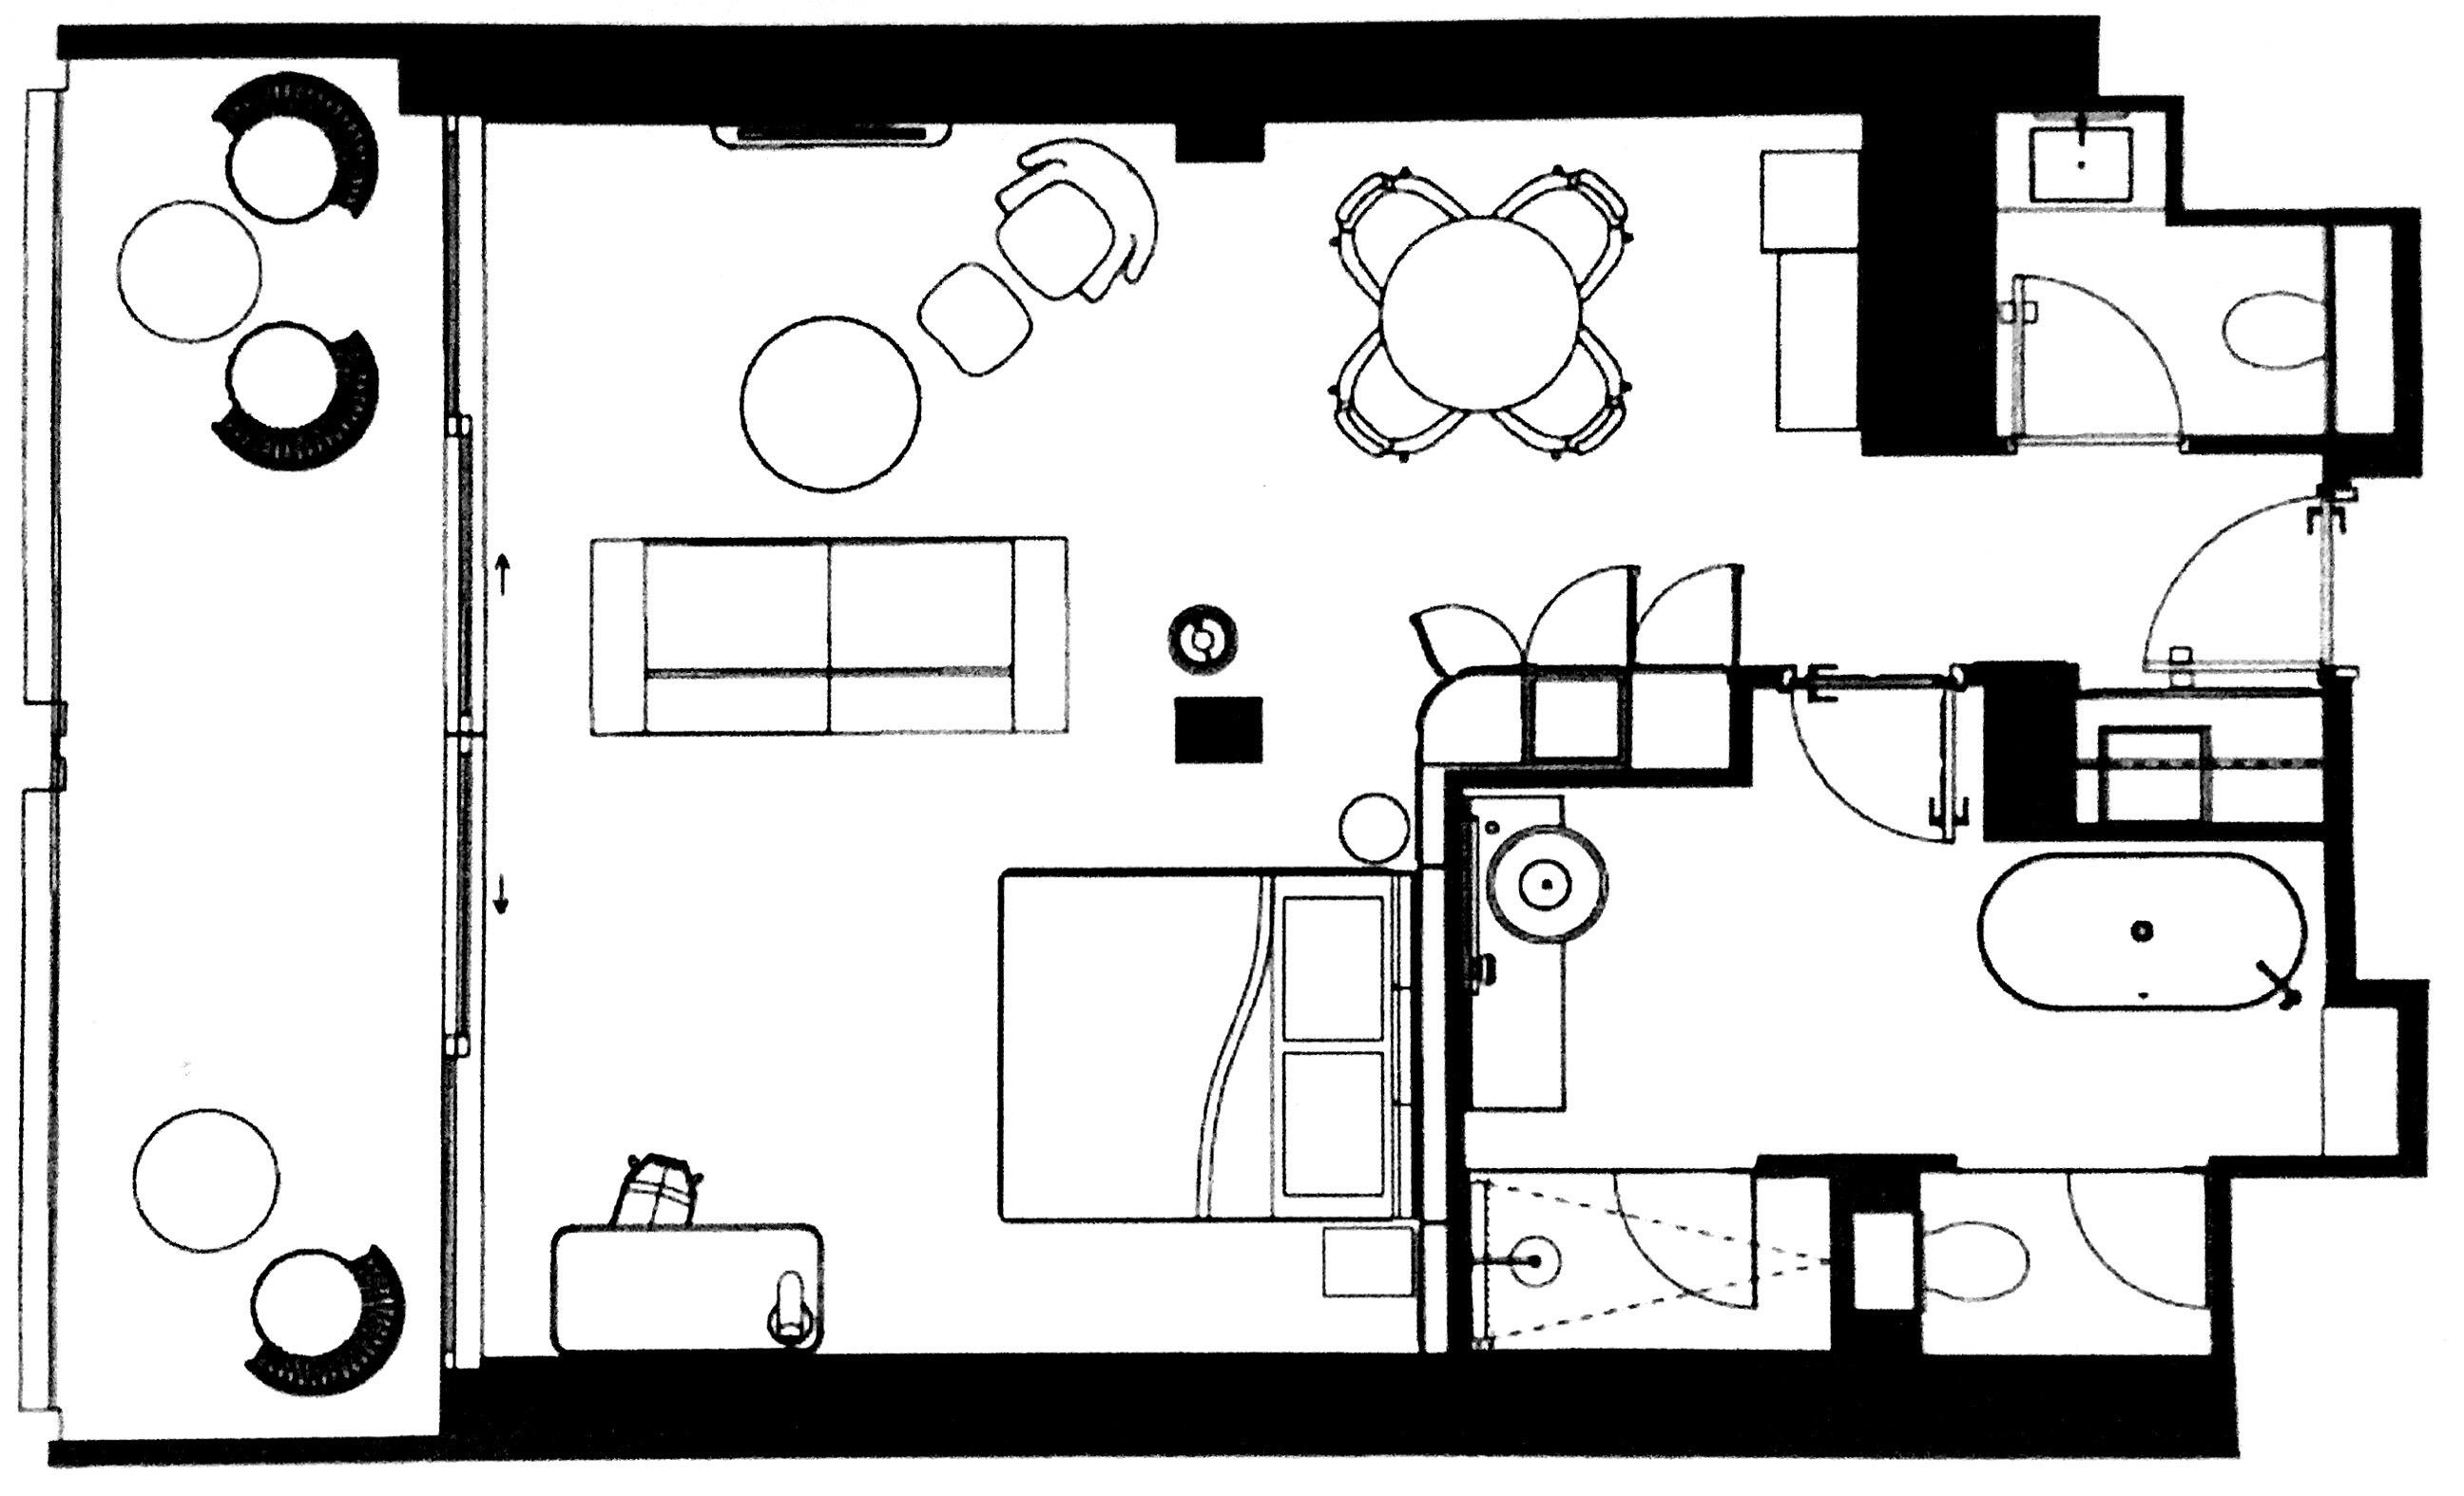 28 Visio Floor Plan Scale Visio Floor Plan Scale Visio